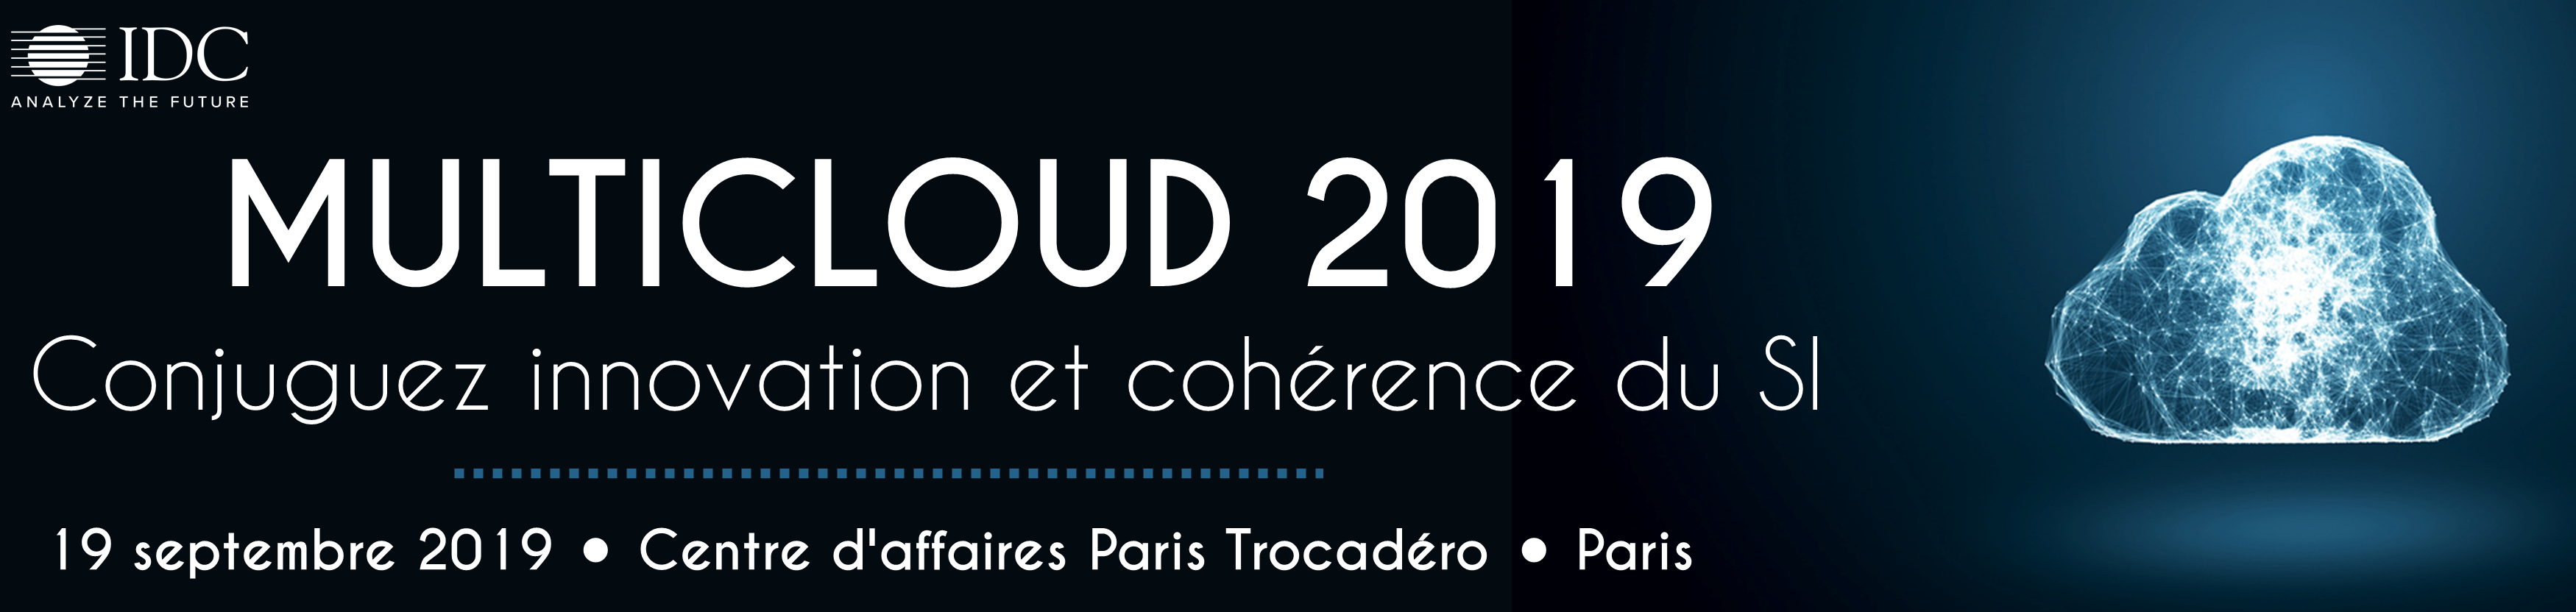 Conference IDC - Multicloud - 19 Septembre 2019